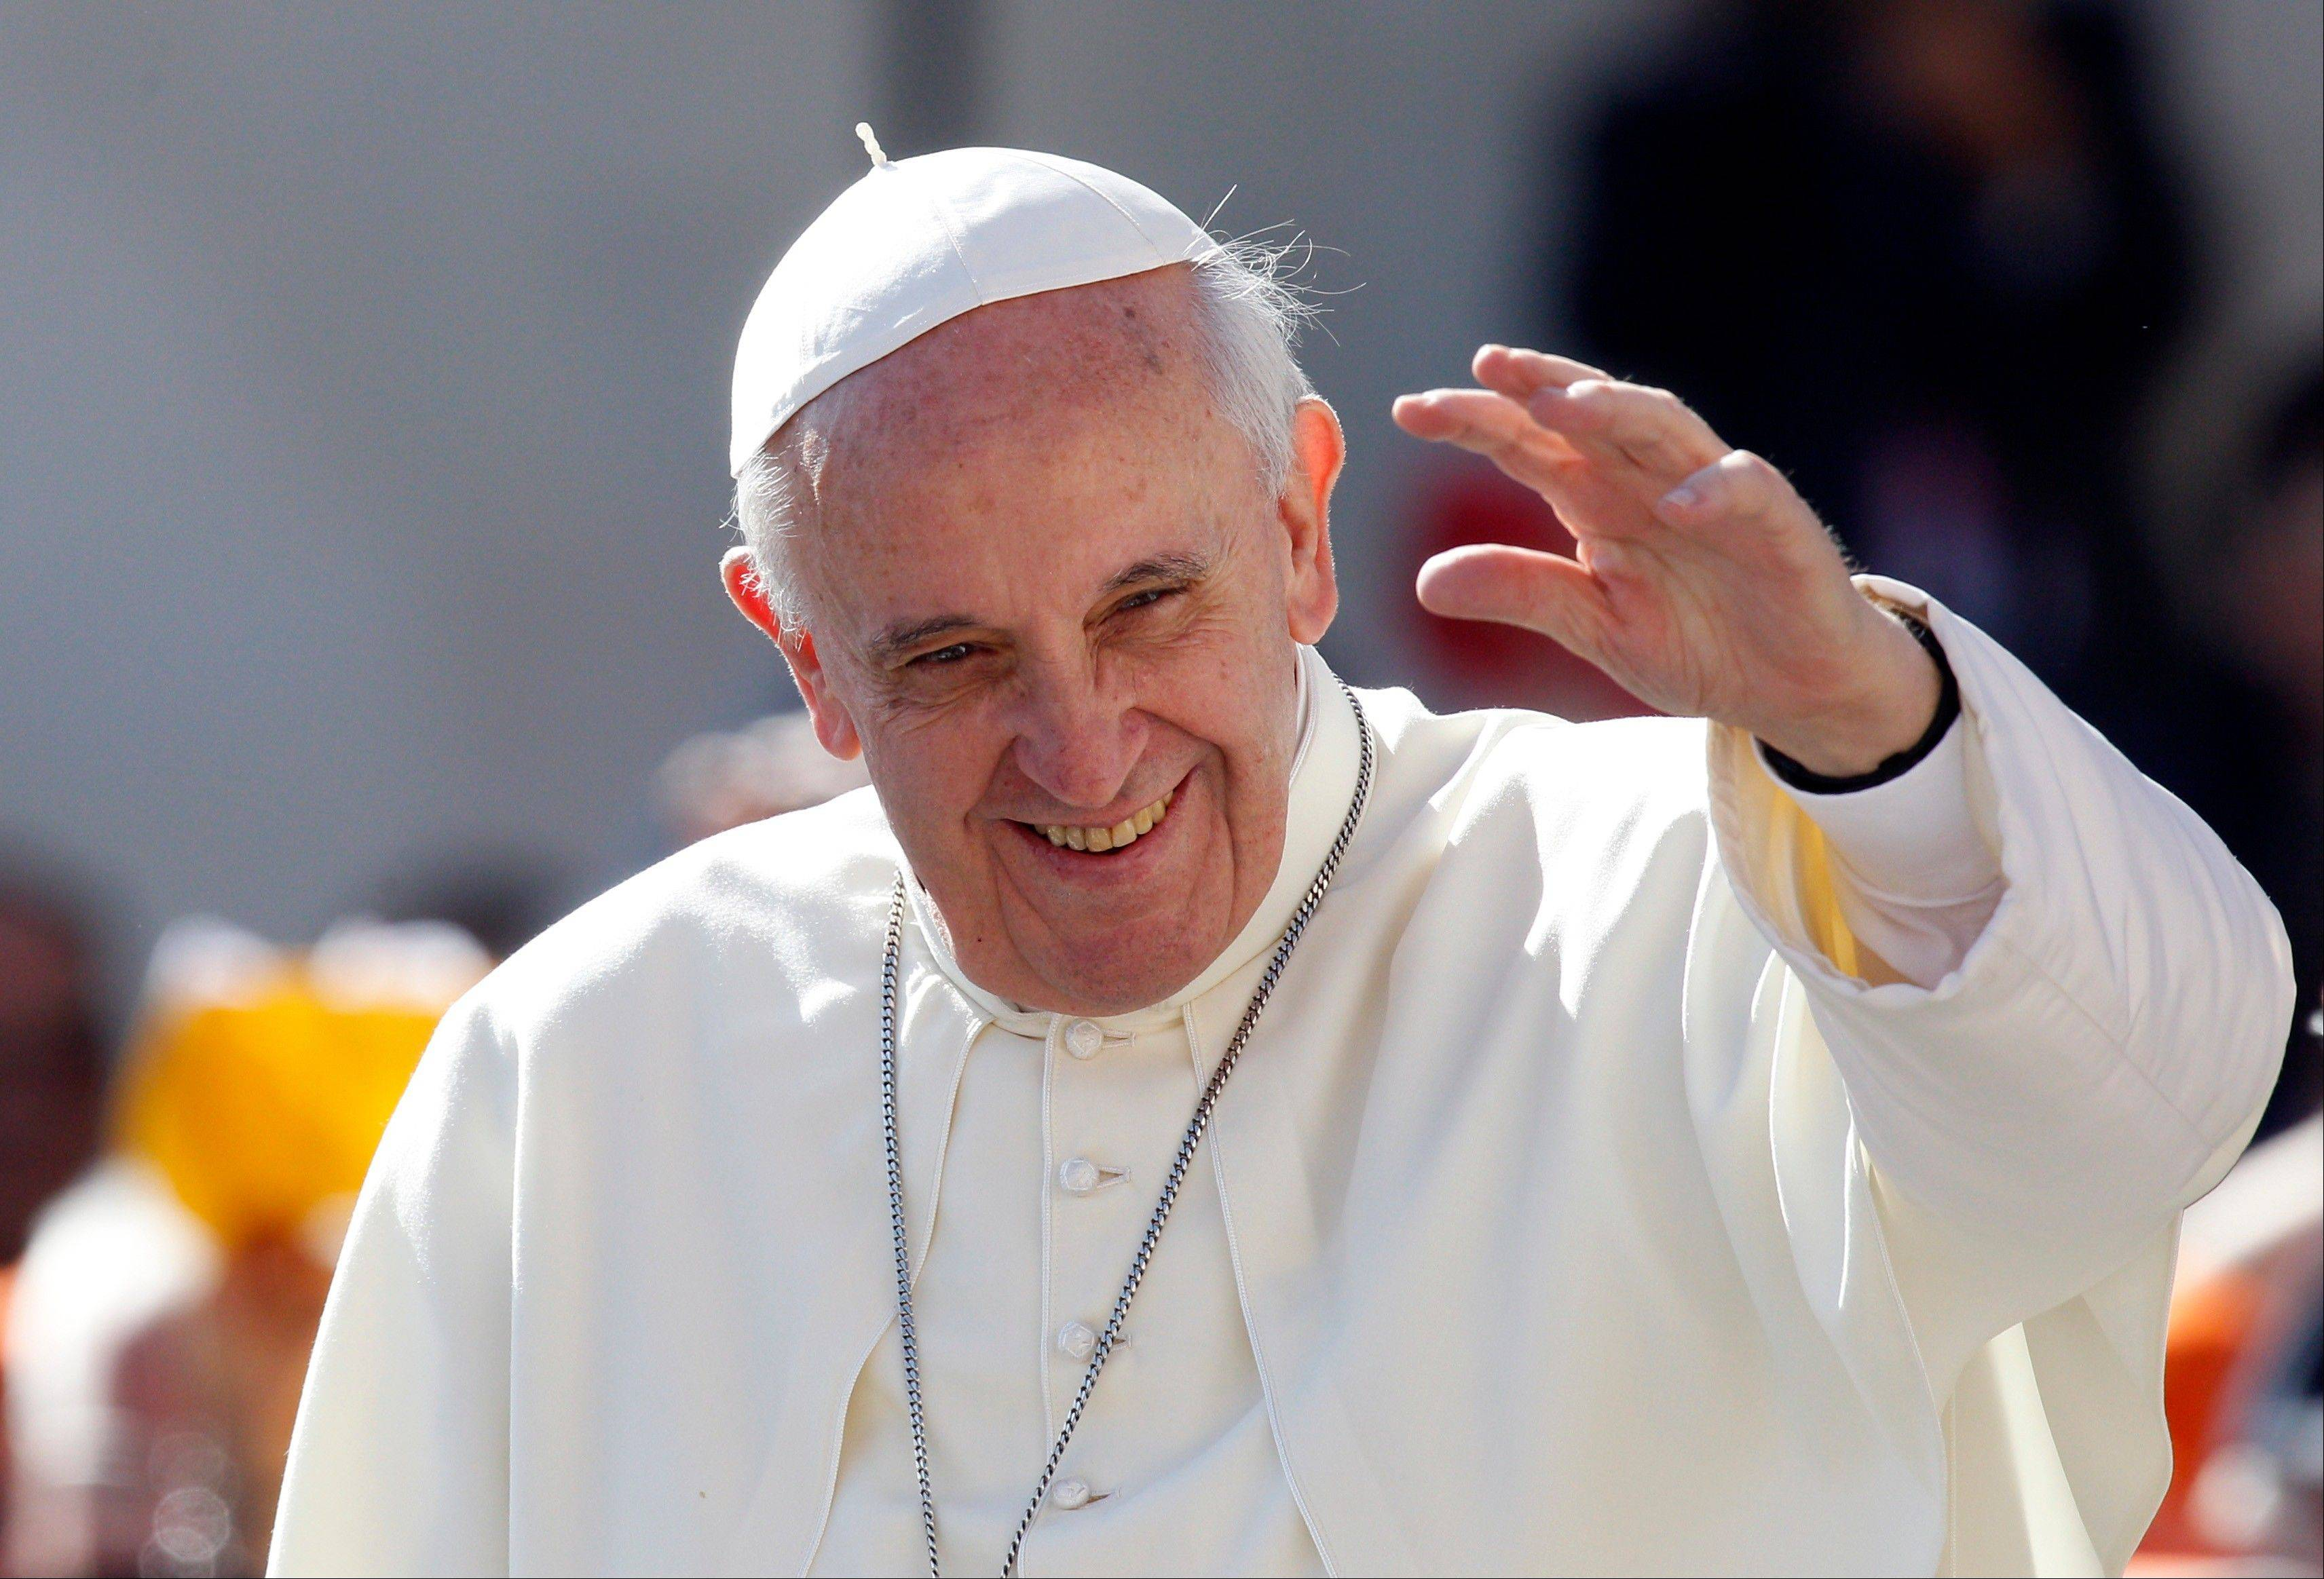 Pope urges reform, wants church with modern spirit